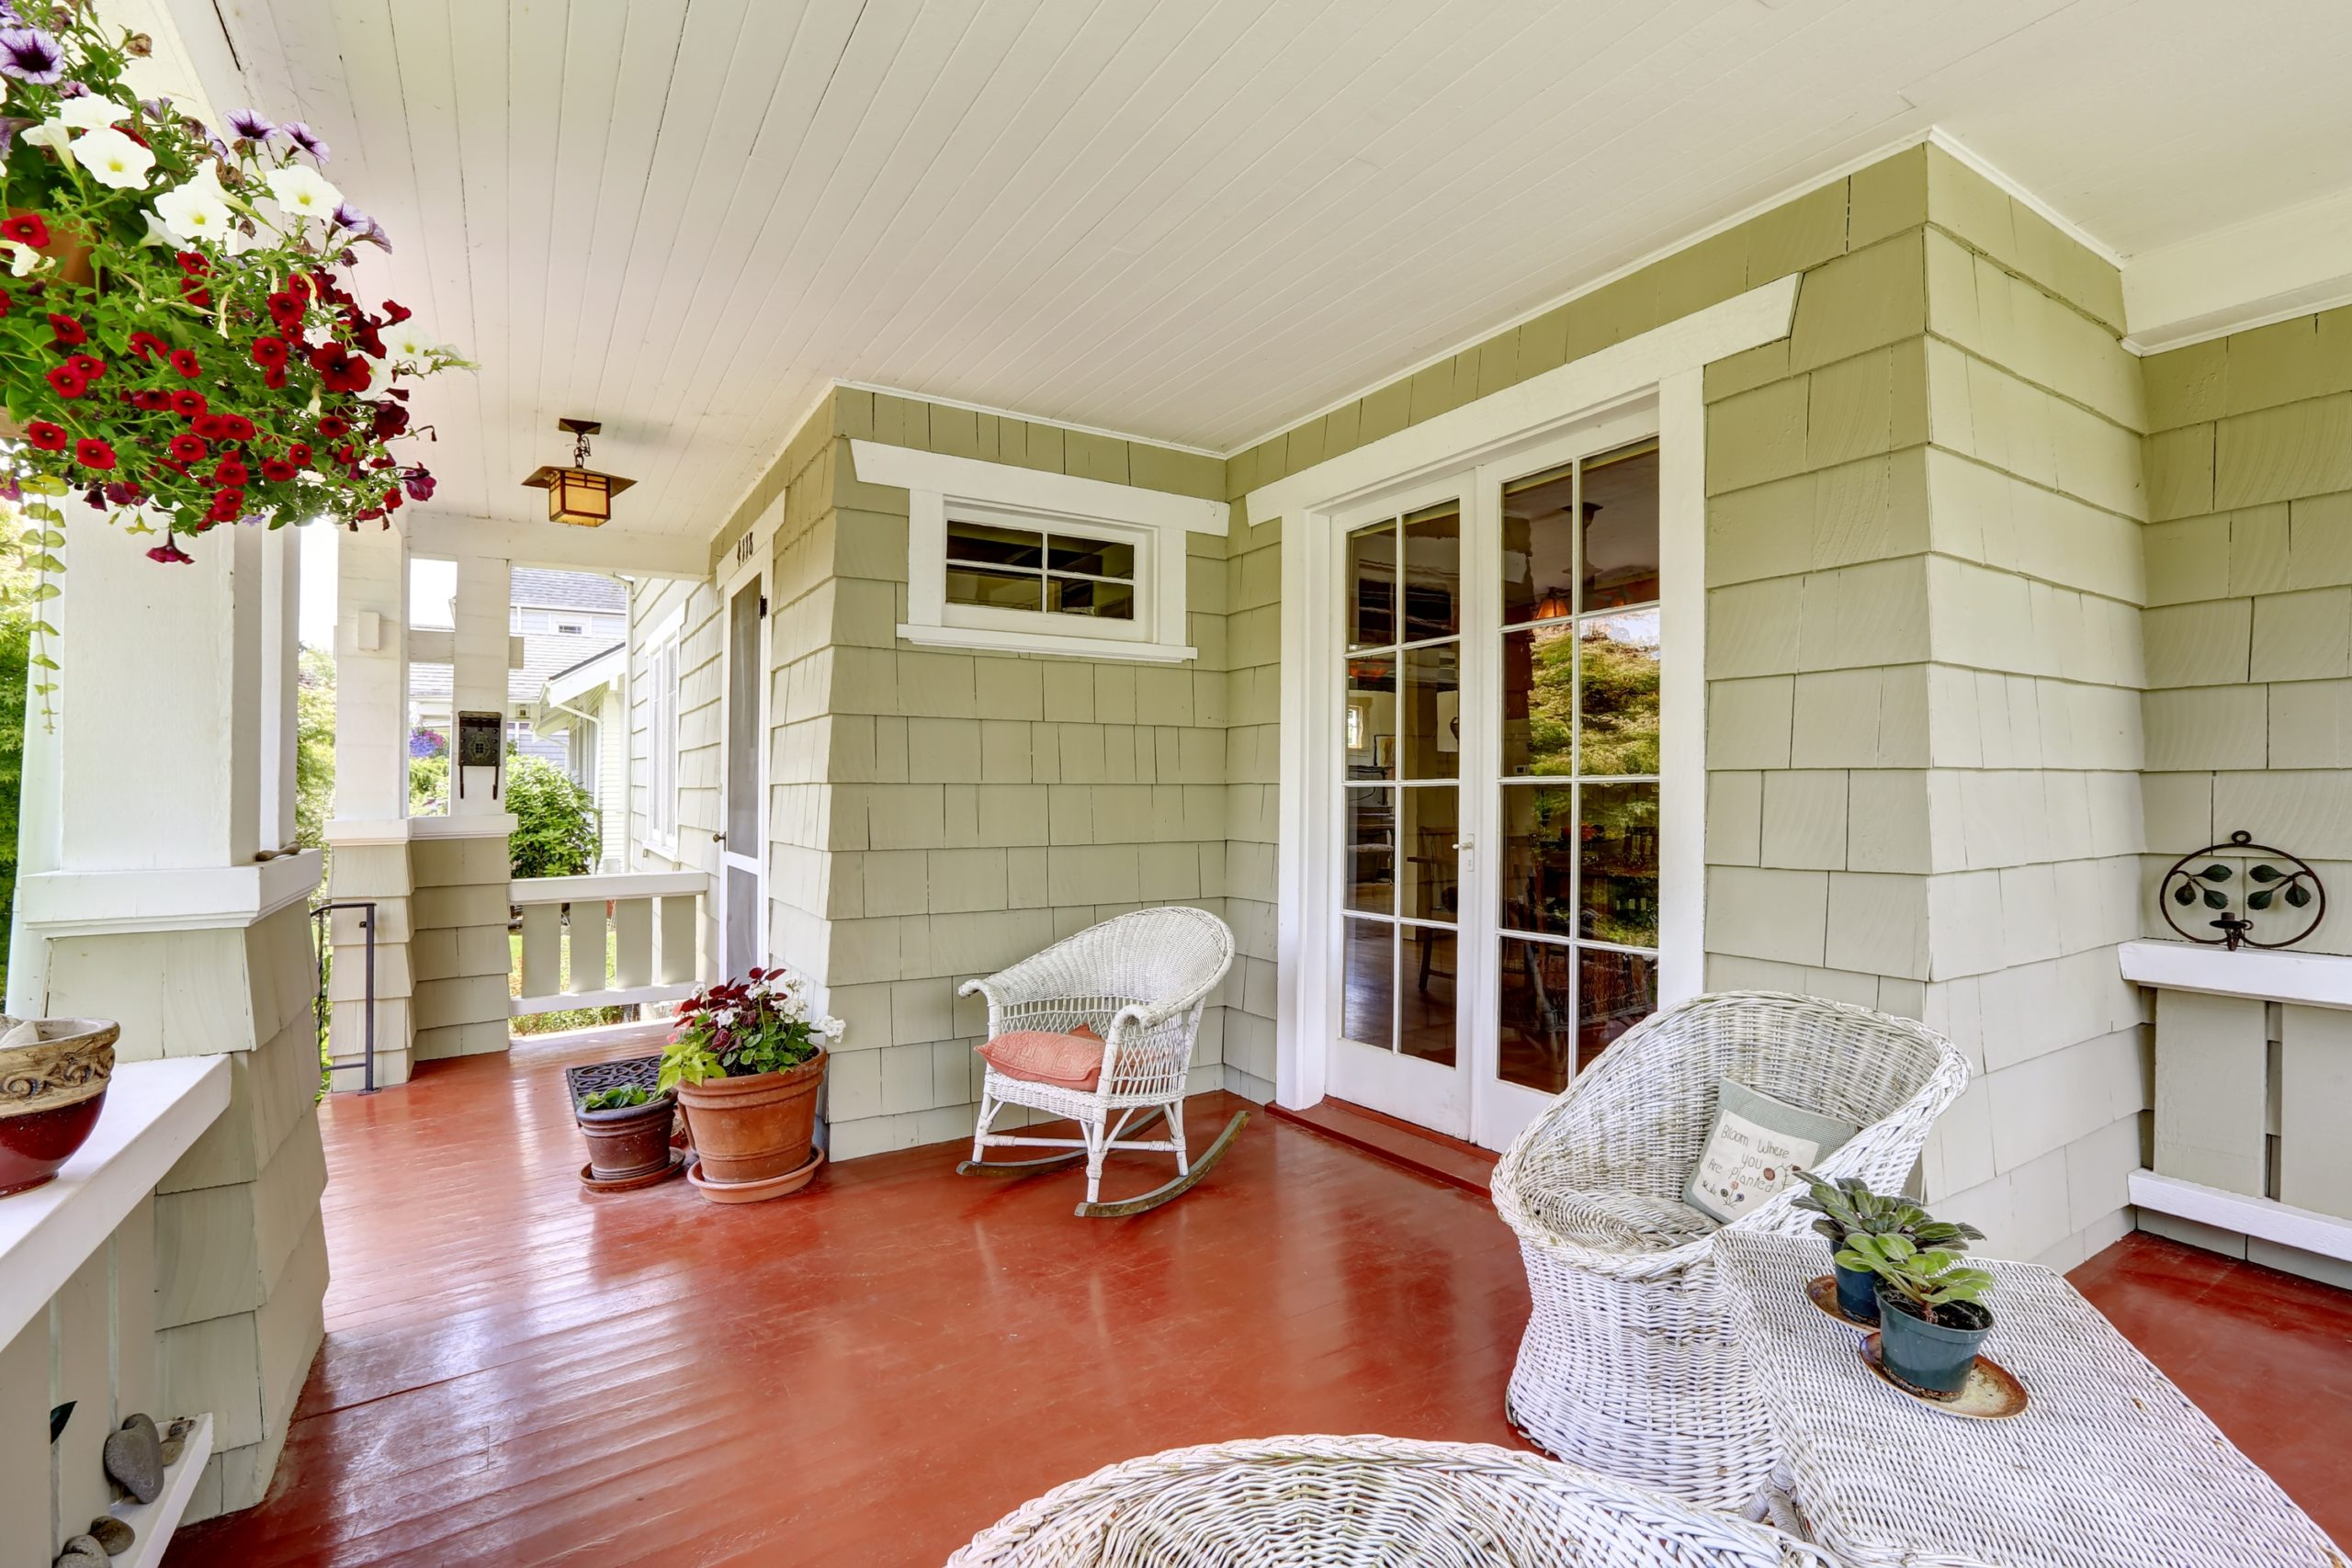 A Front Porch Is A Must-Have For Traditional Southwest Florida Homes